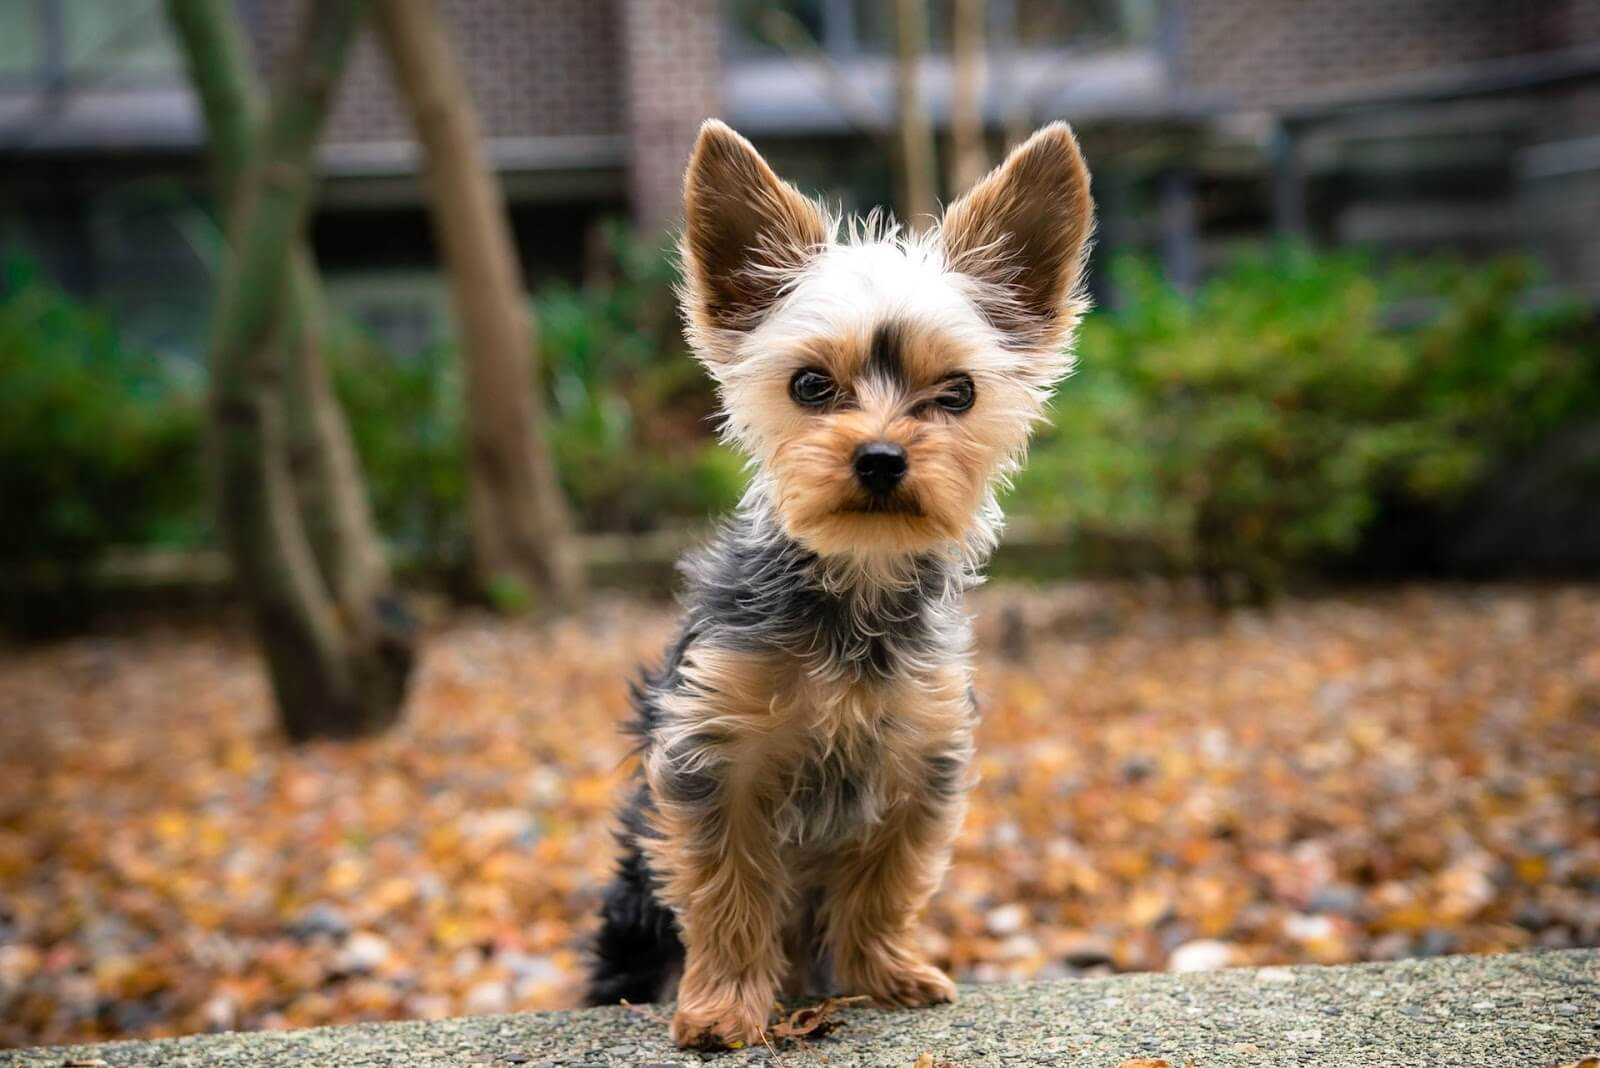 A small dog outdoors in autumn